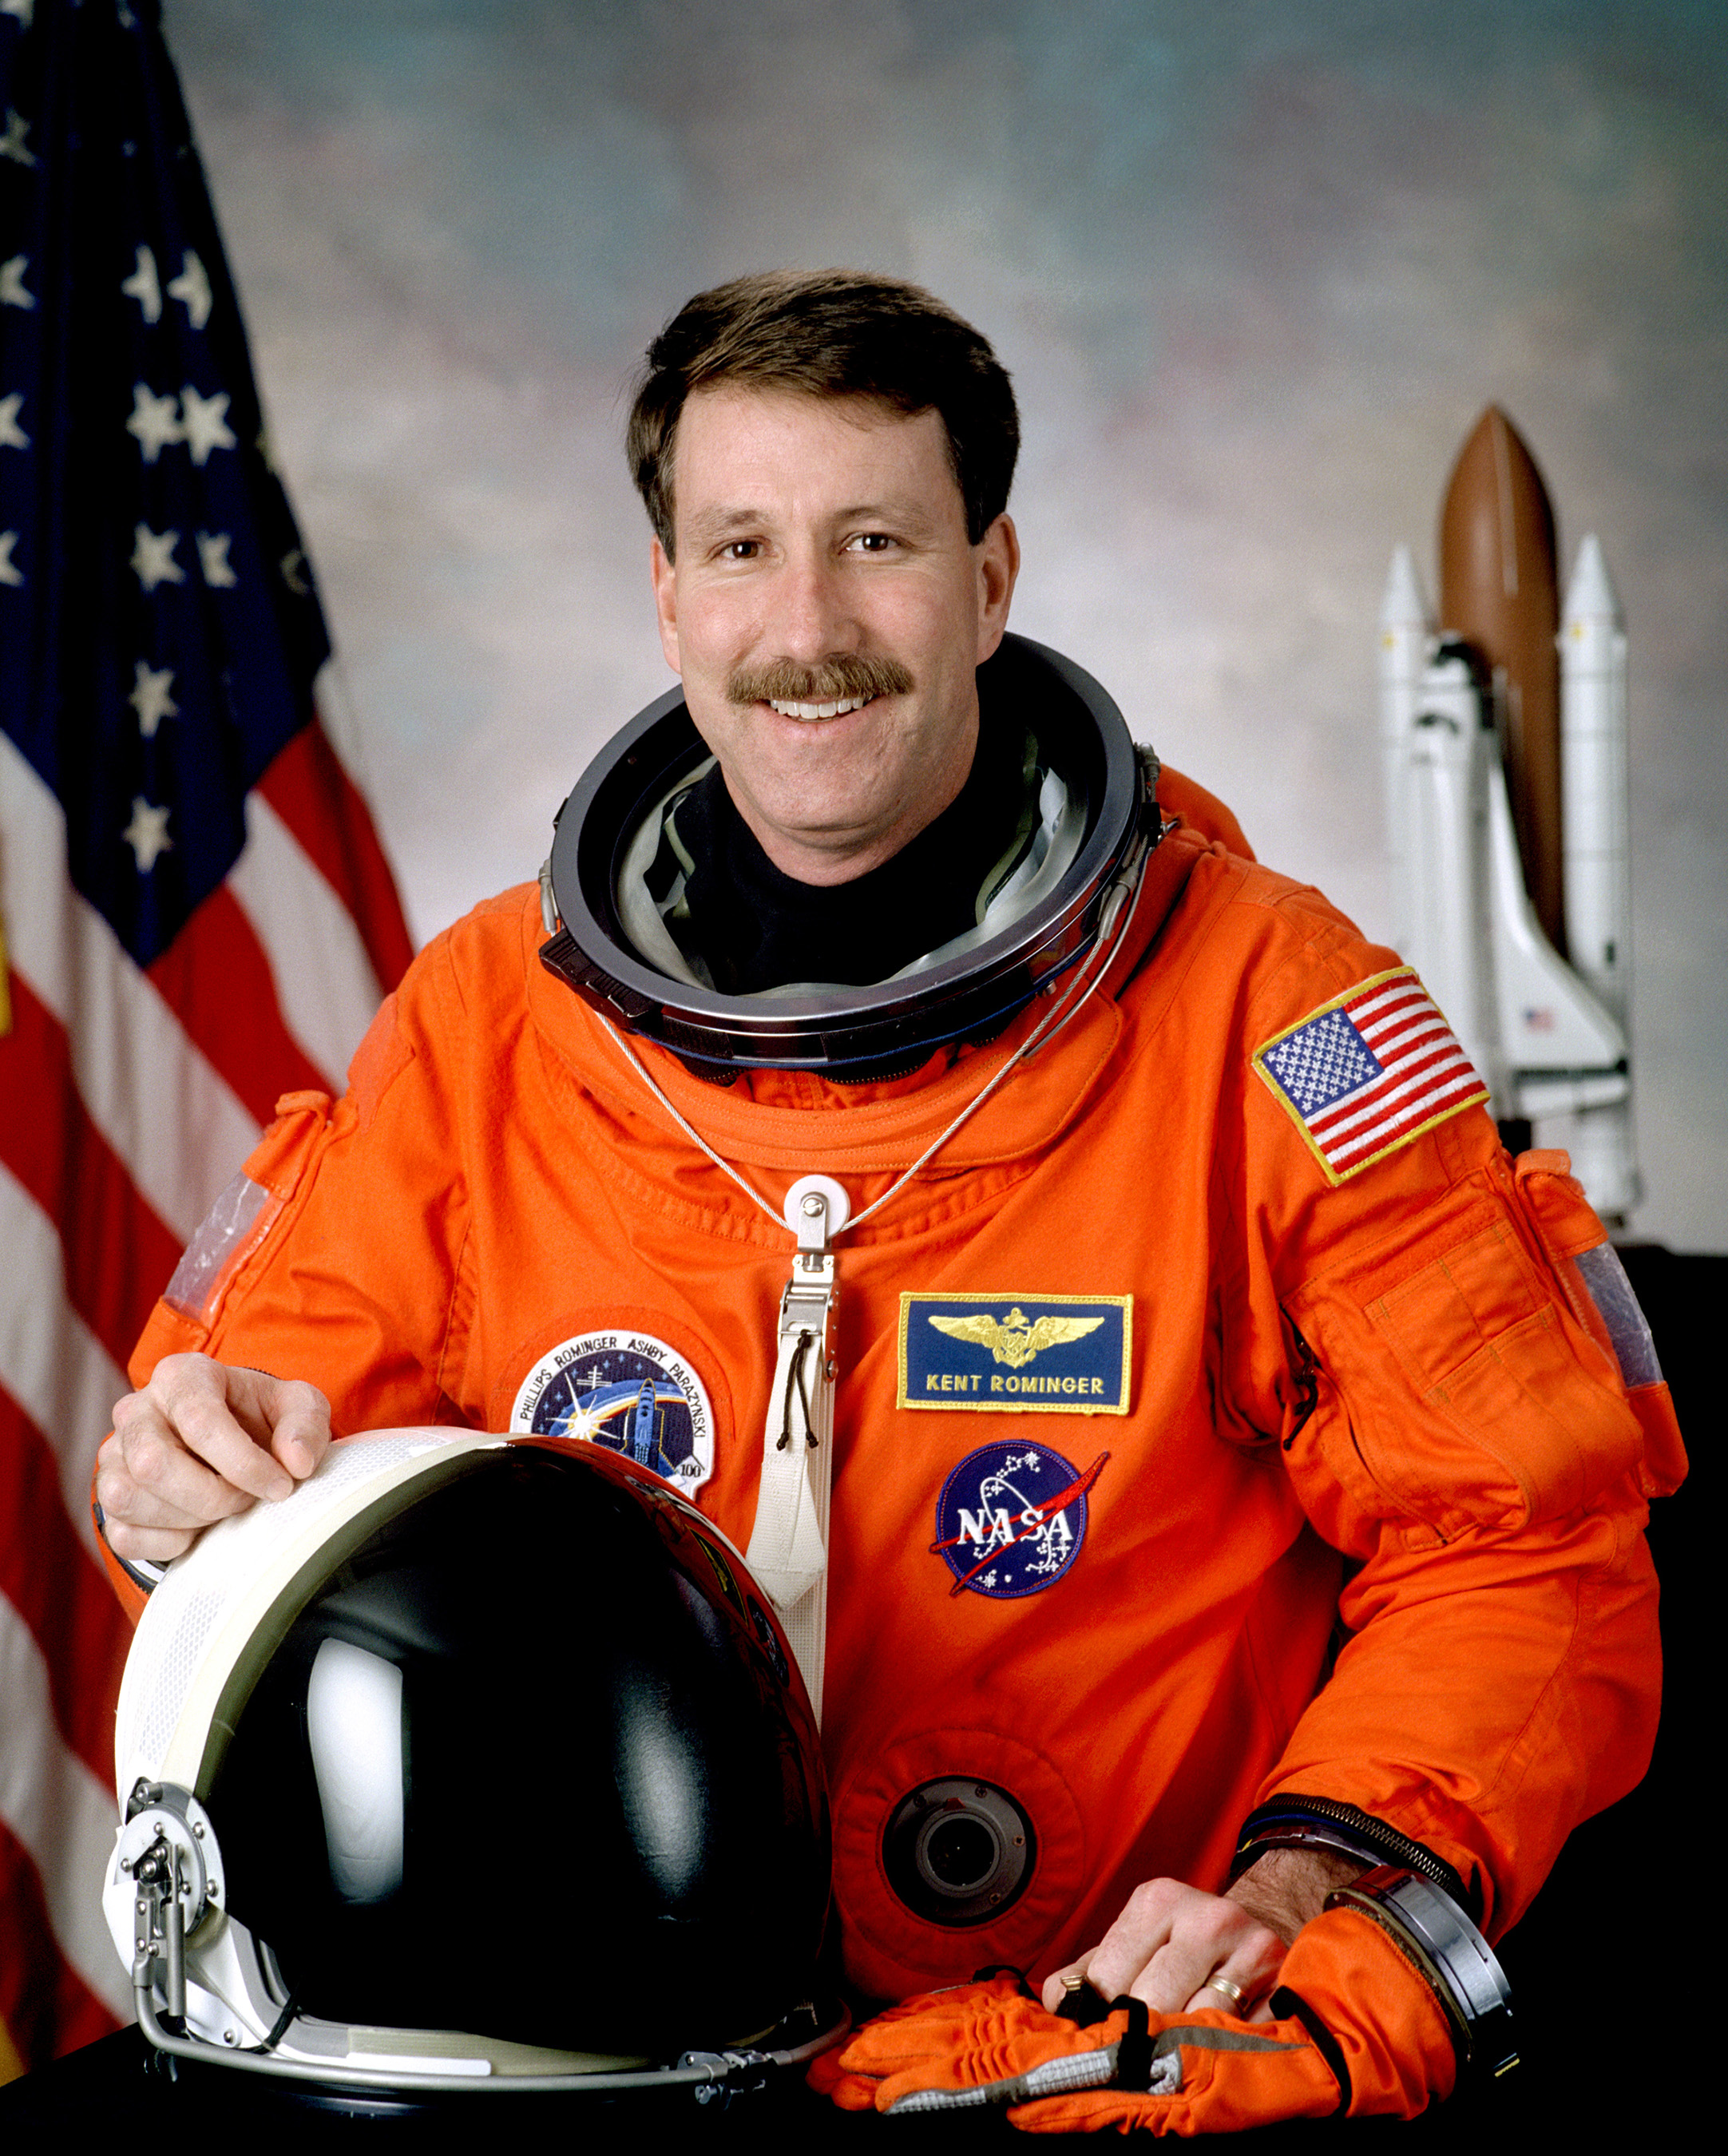 astronaut hall of fame members - photo #30